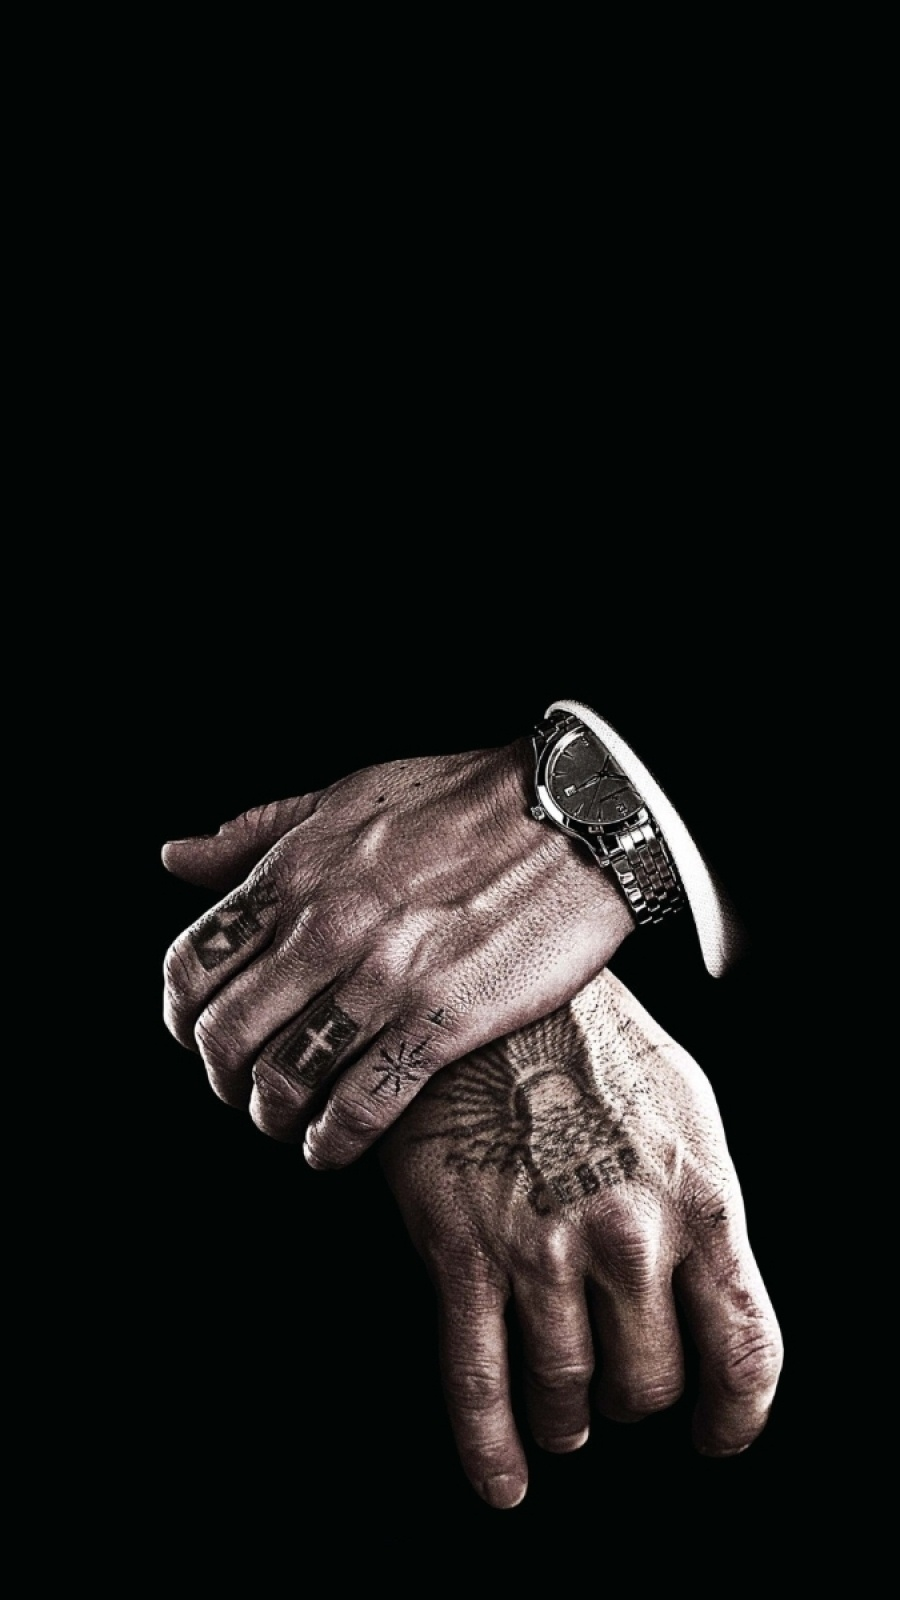 Black mafia watch iPhone Wallpaper iphoneswallpapers com